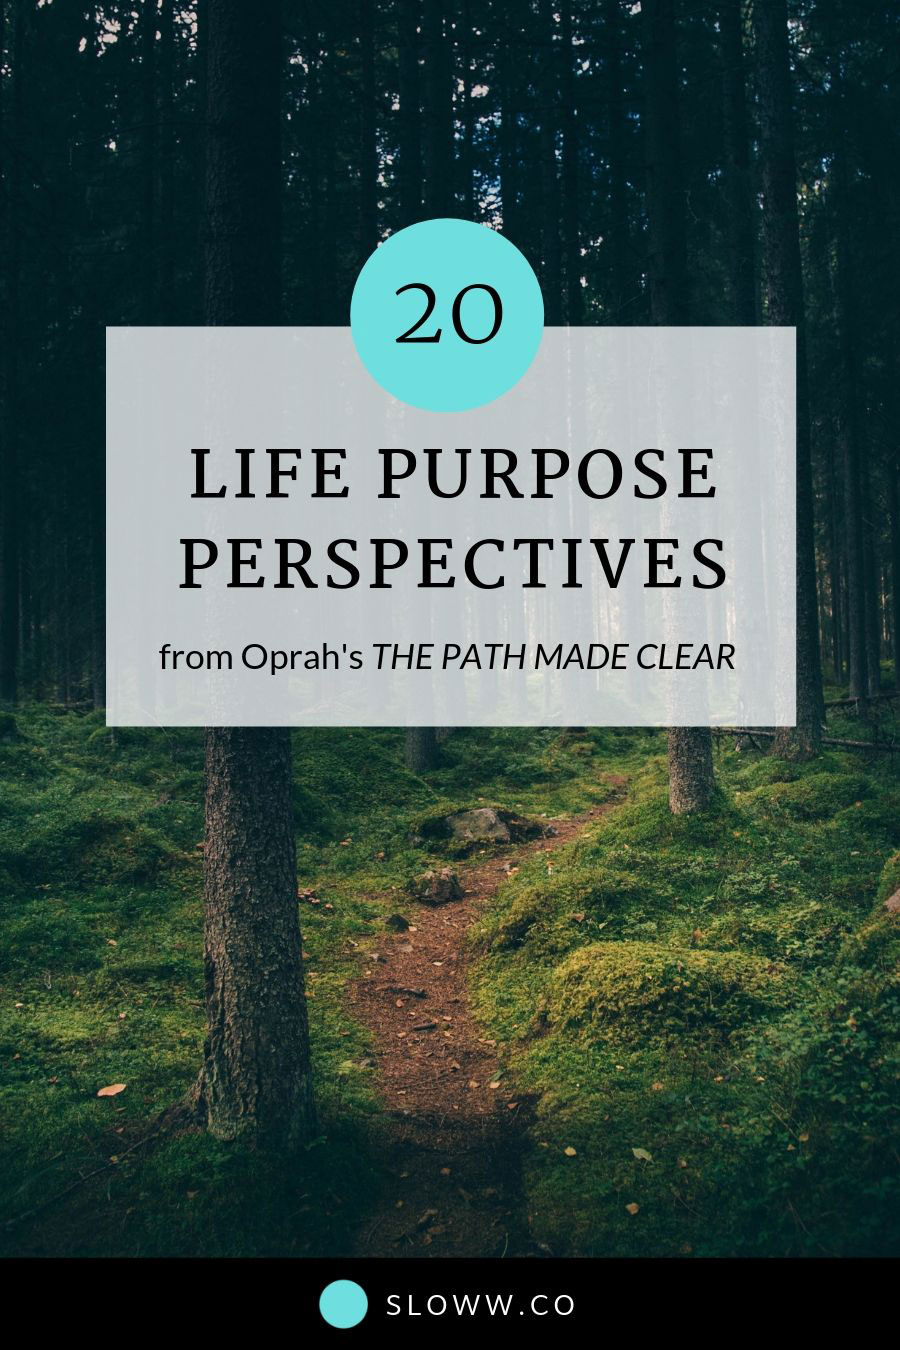 Sloww Oprah Path Made Clear Life Purpose Perspectives